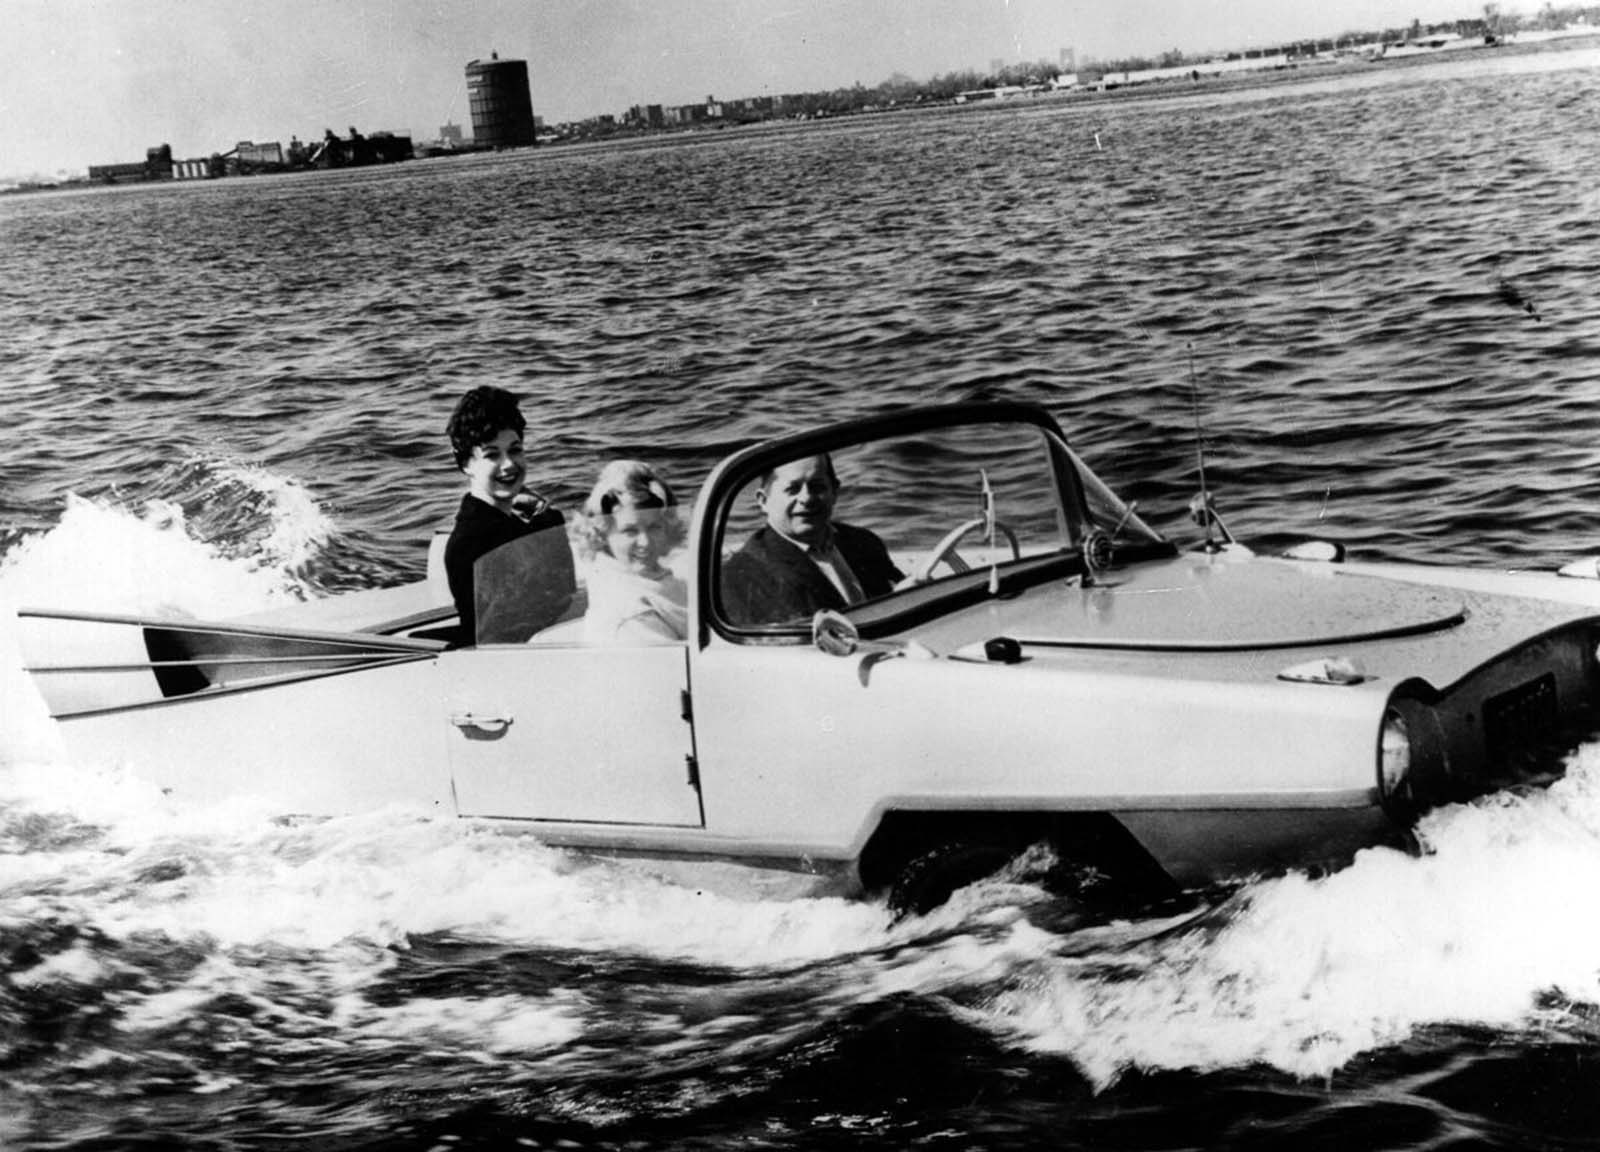 The Amphicar is demonstrated at the International Motor Show on Long Island. 1960.